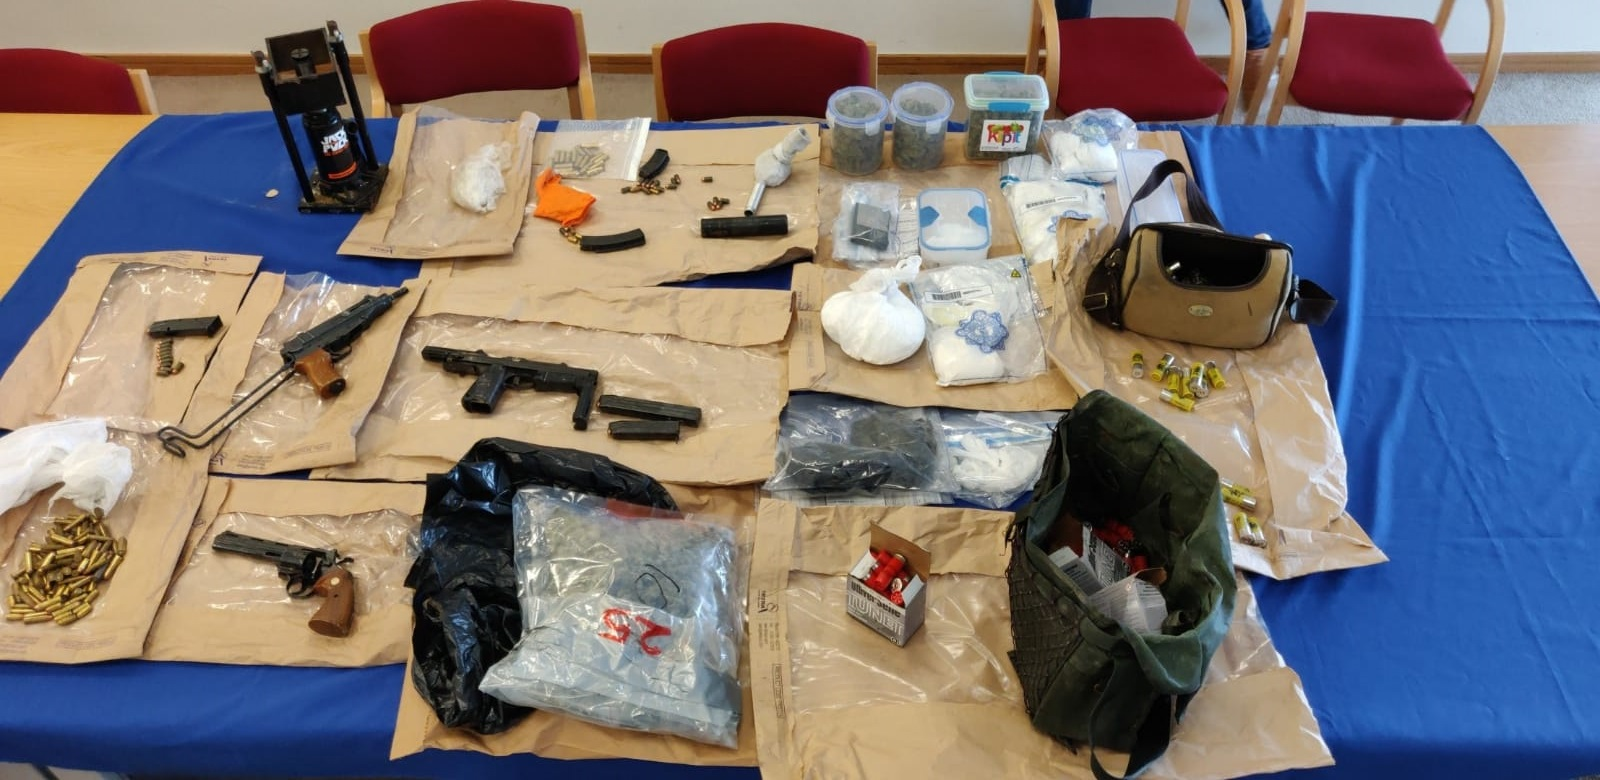 Items seized in the raid